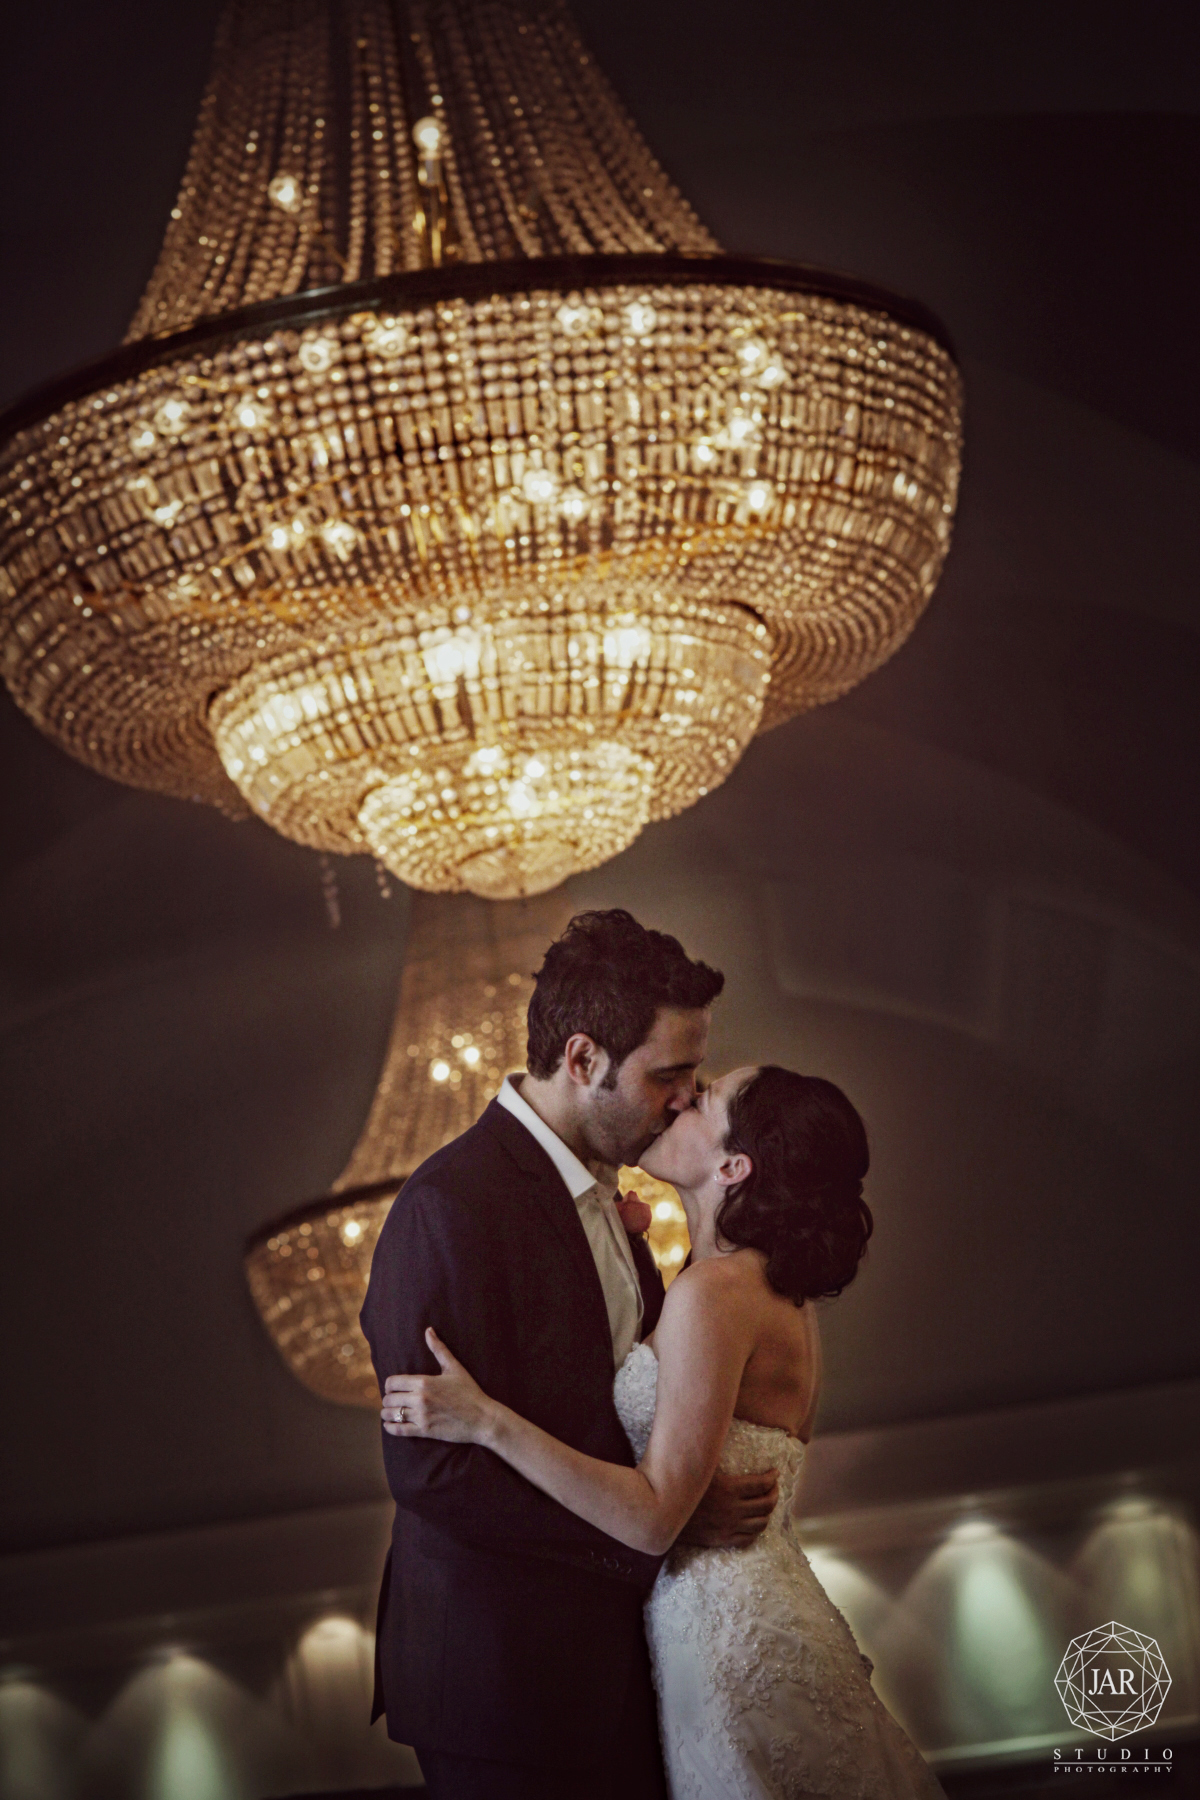 41-jewish-wedding-photography-jarstudio-orlando.JPG